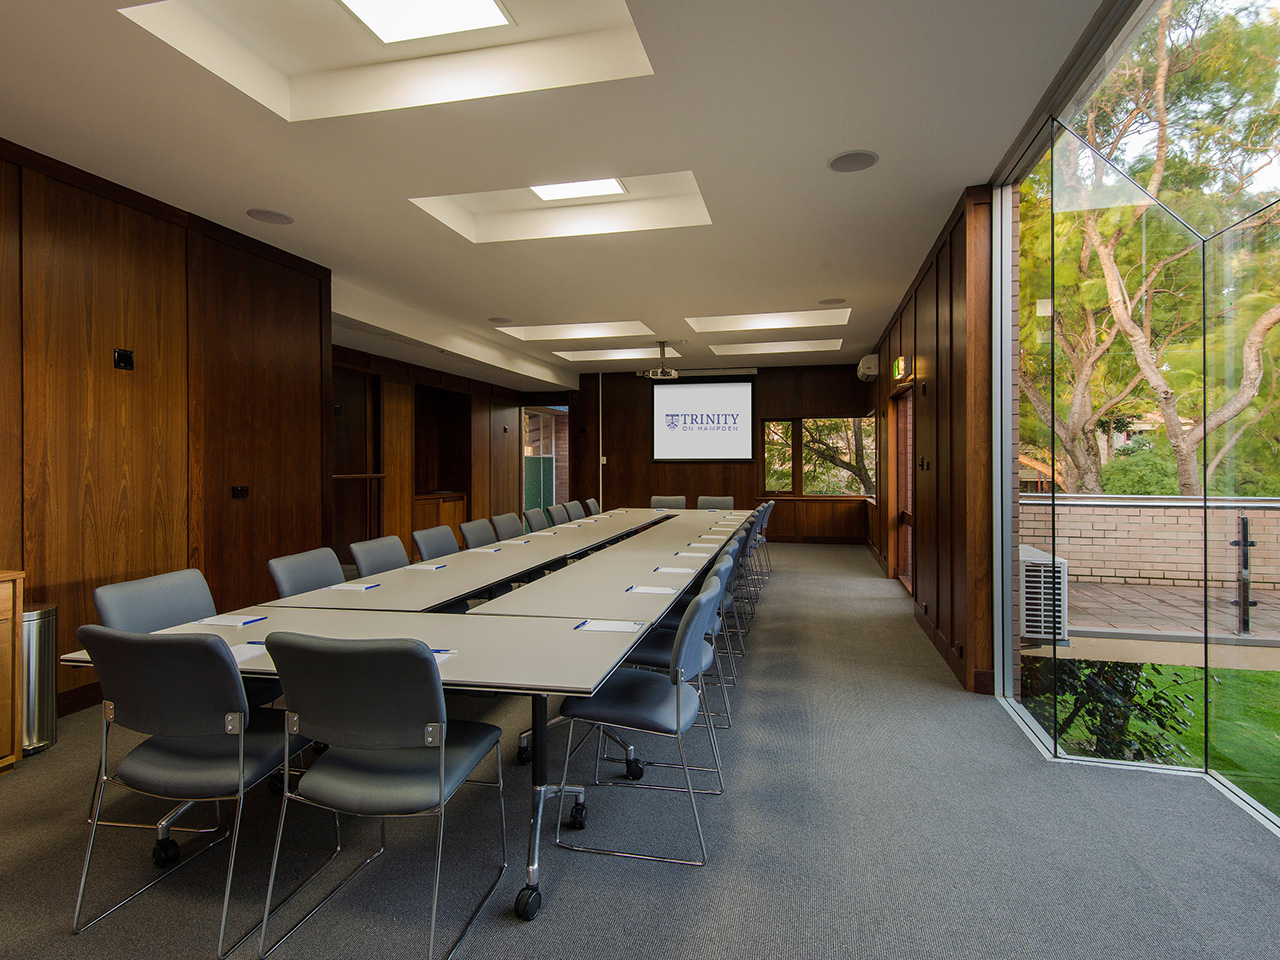 Tables And Chairs In Boardroom Setup Inside The Function Room With Projection Screen And Garden View